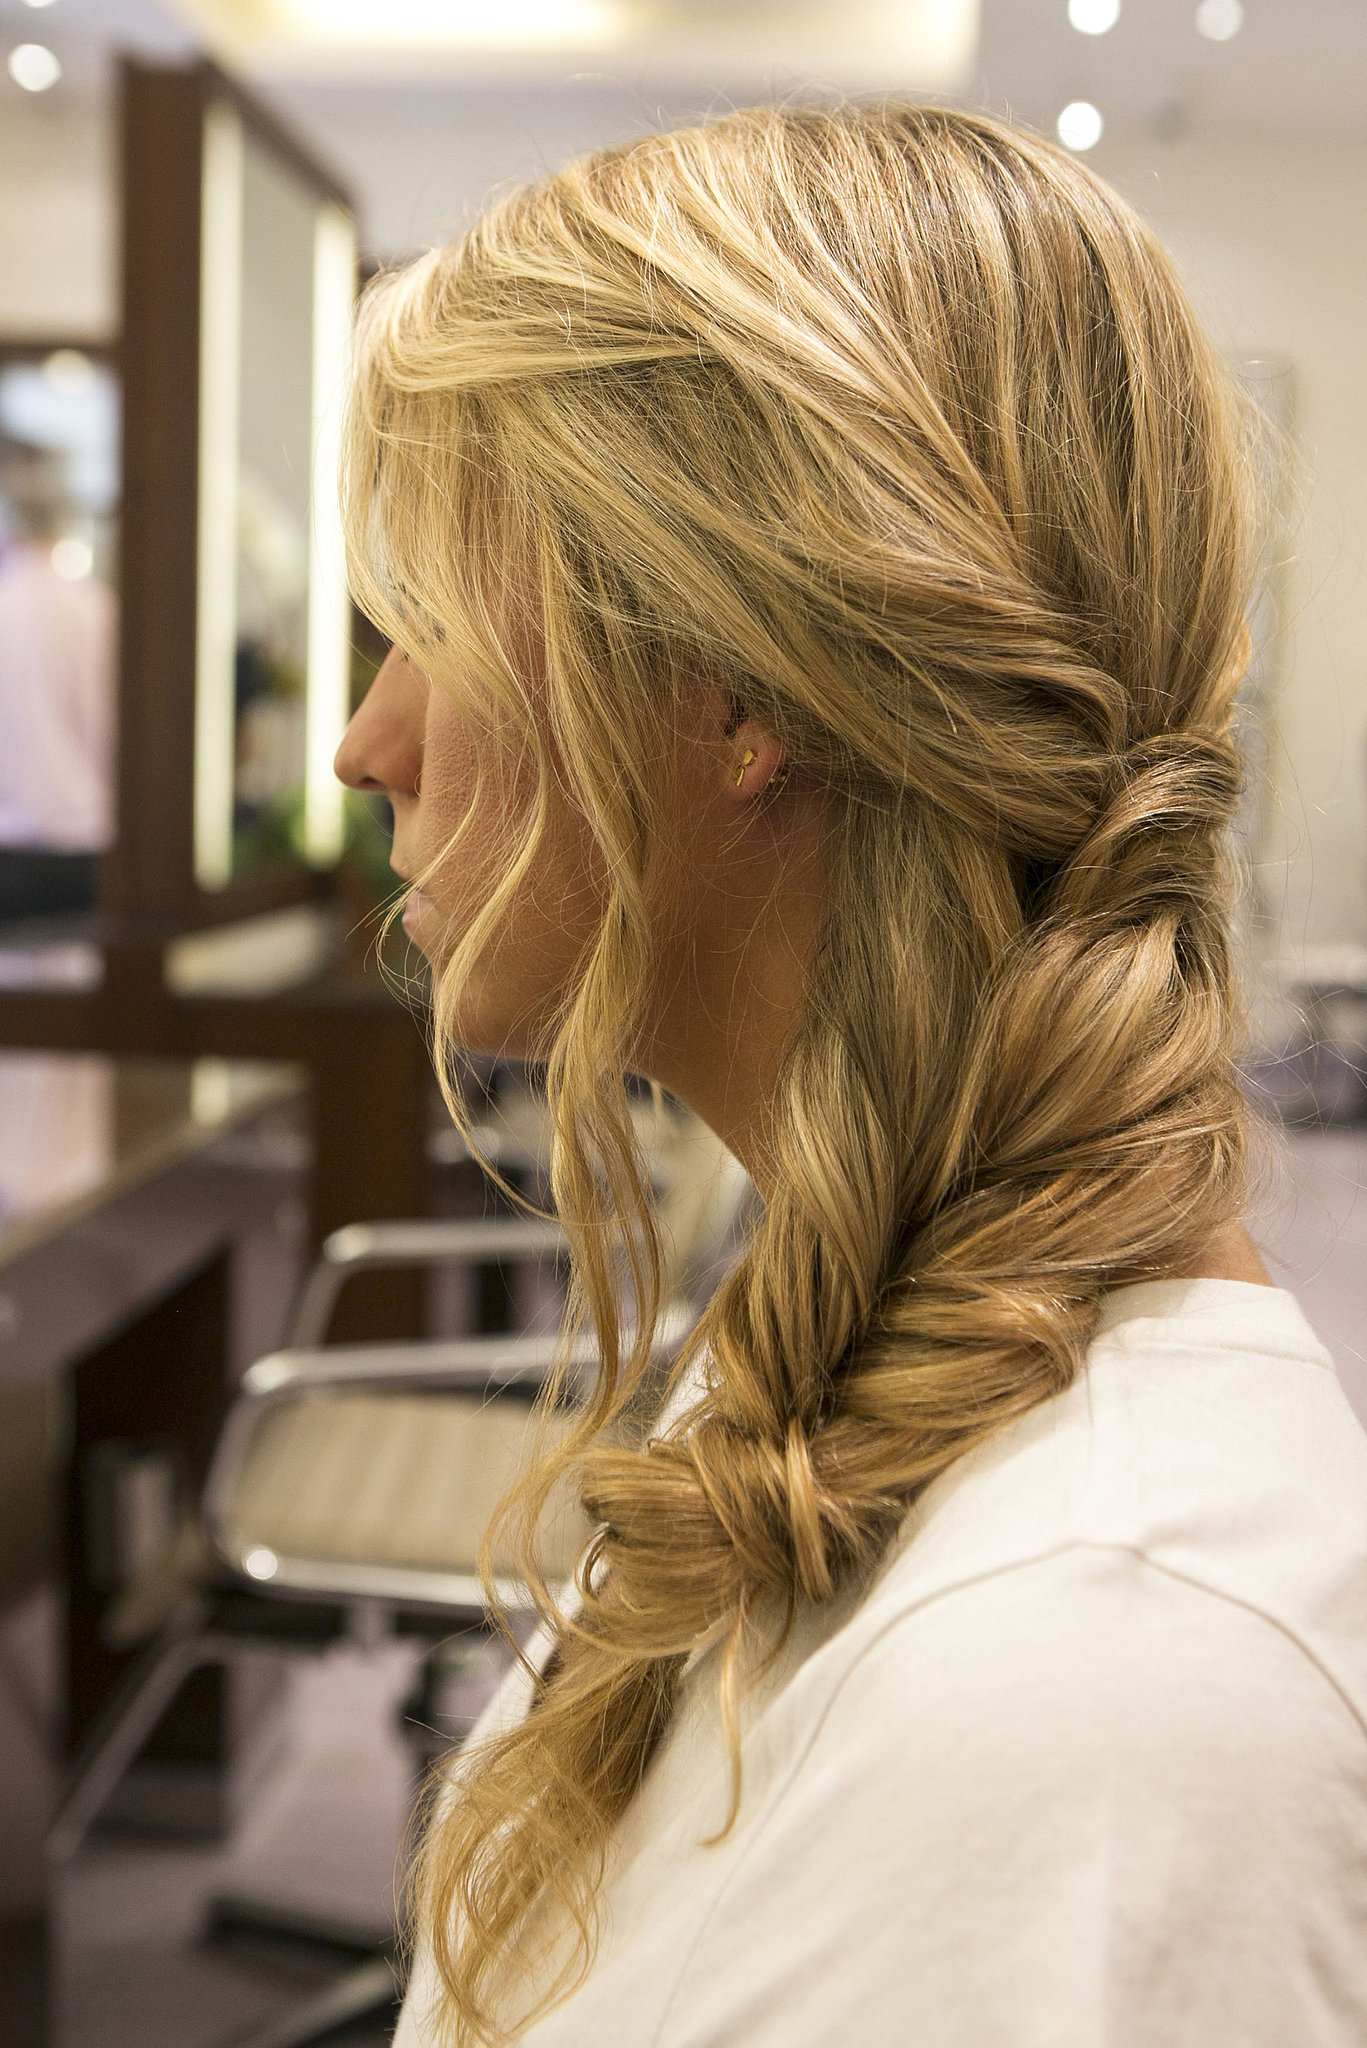 The final look is a boho-chic take on the standard side braid. Plus, get the downloadable step-by-step guide here!